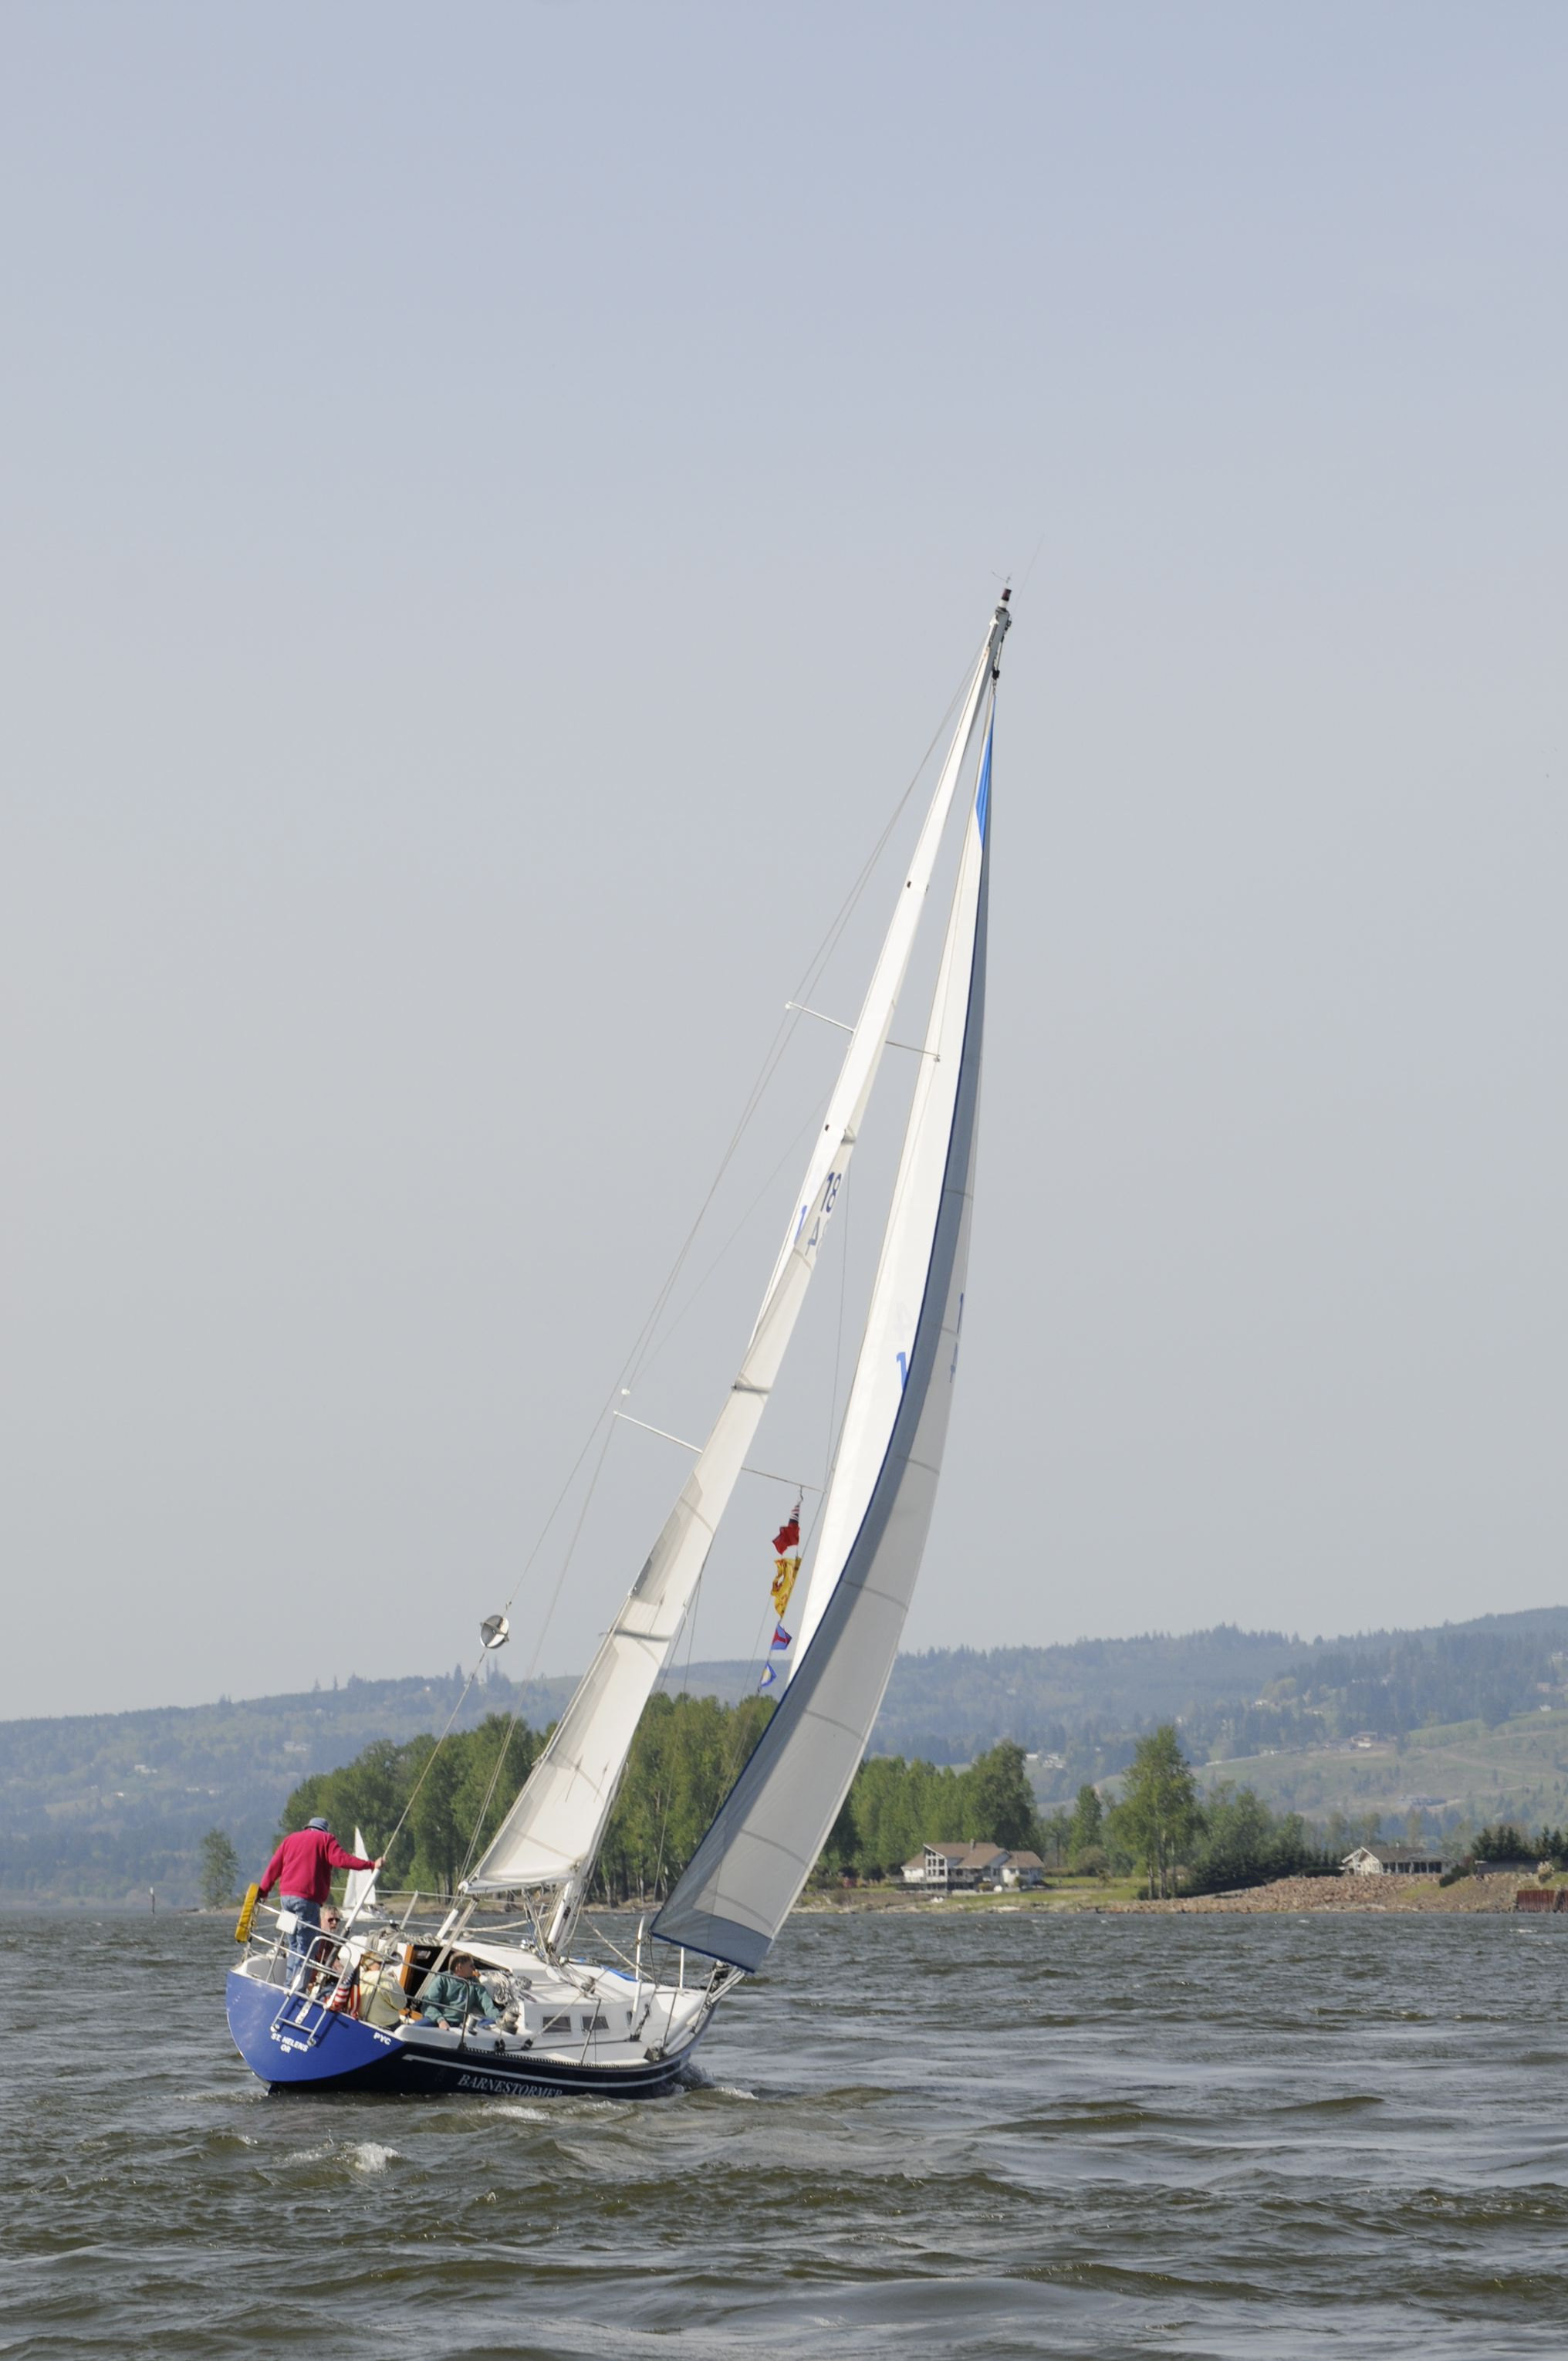 If you help with the website, I will post more photos of your boat!